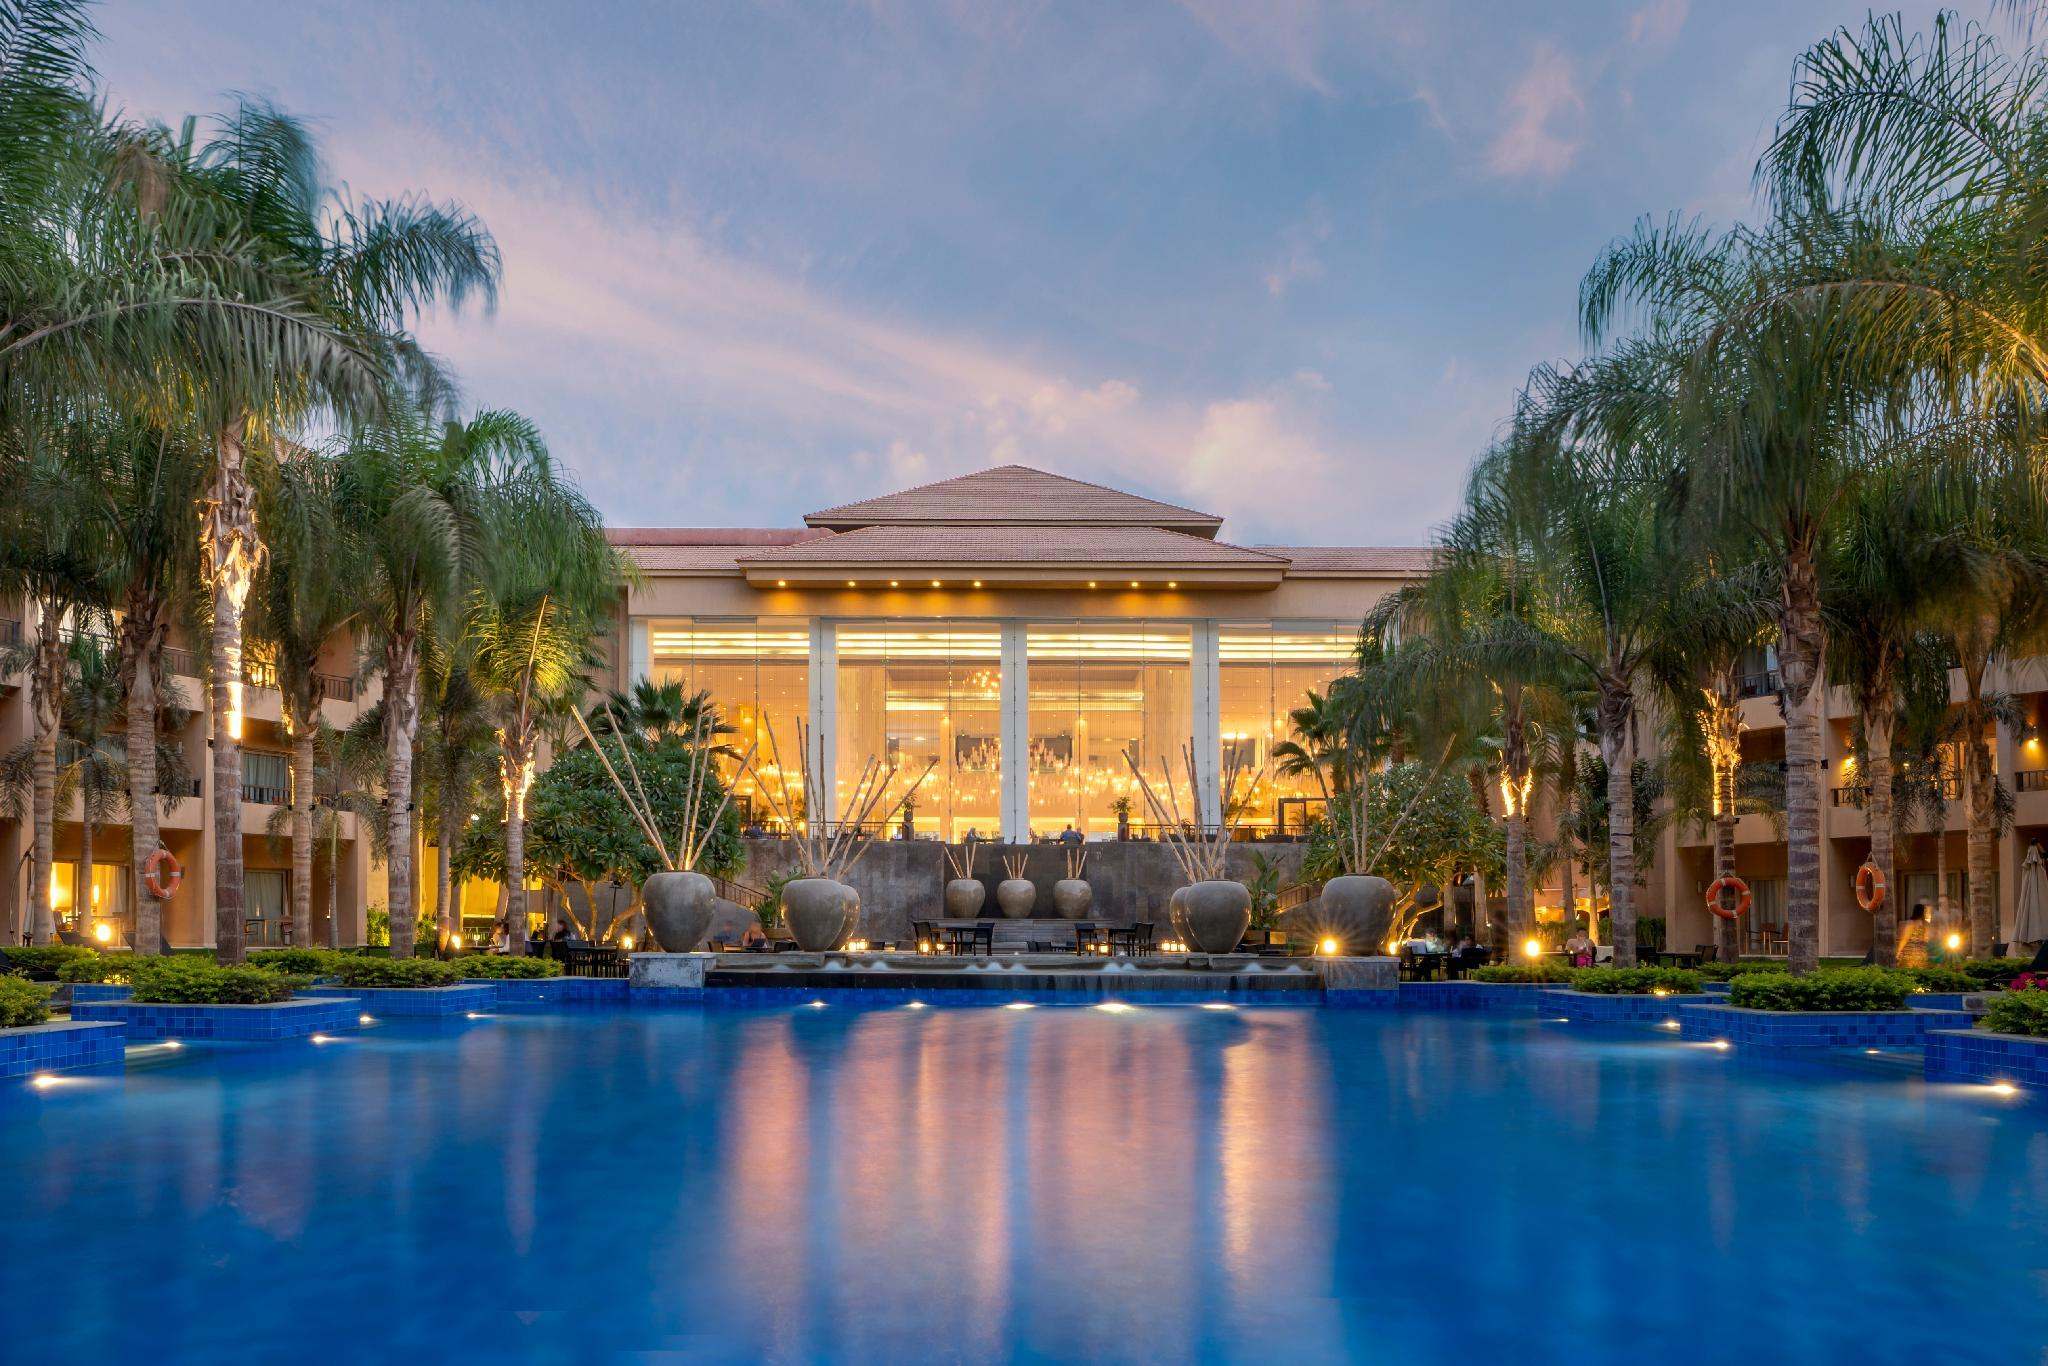 Dusit Thani LakeView Cairo, New Cairo 1